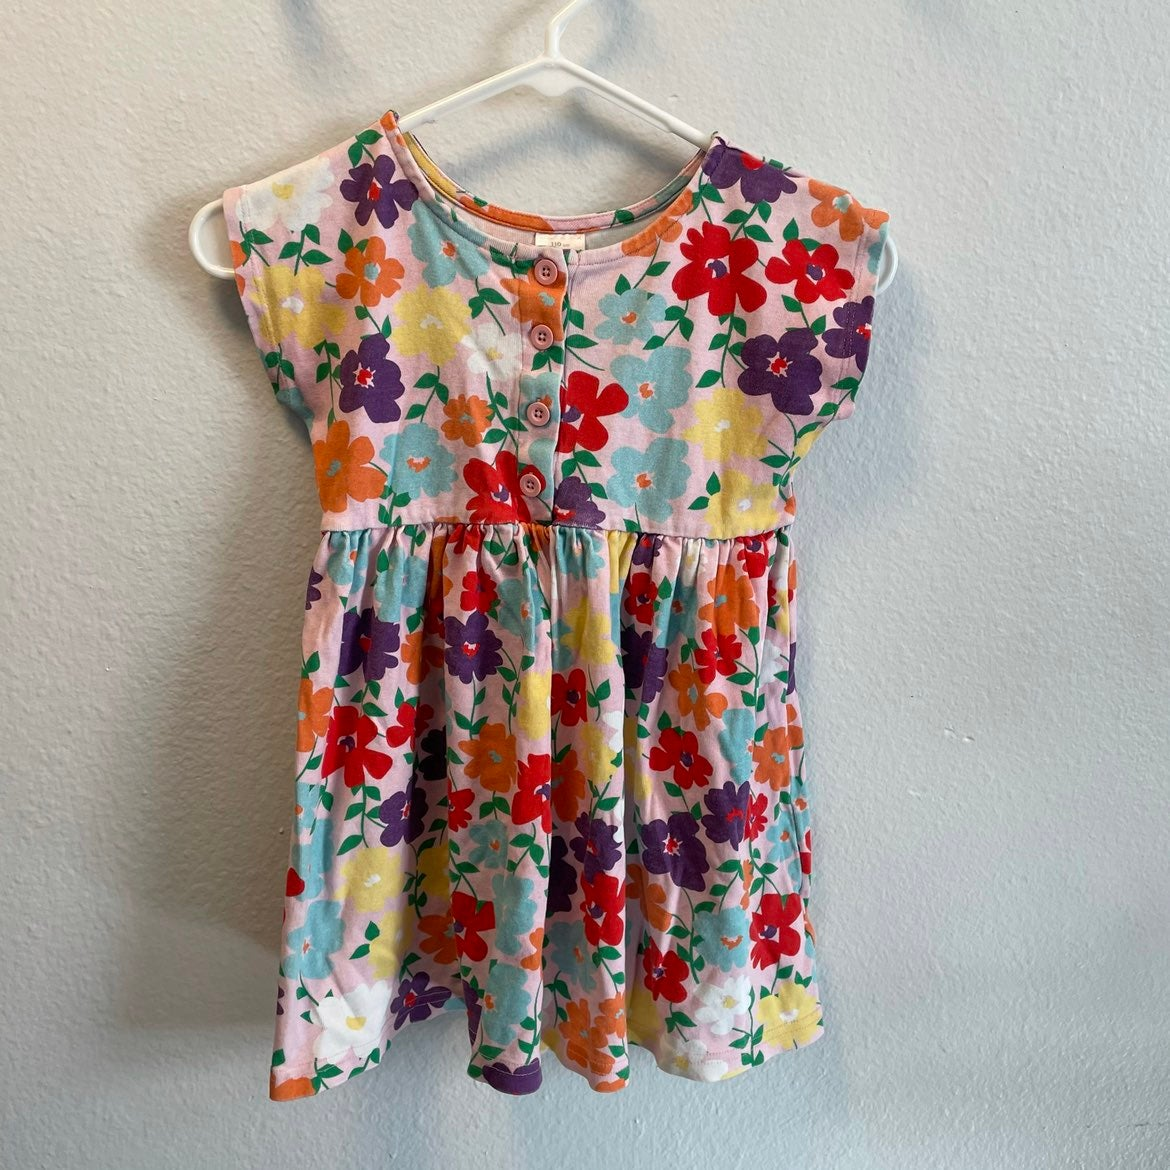 Hanna Andersson floral dress